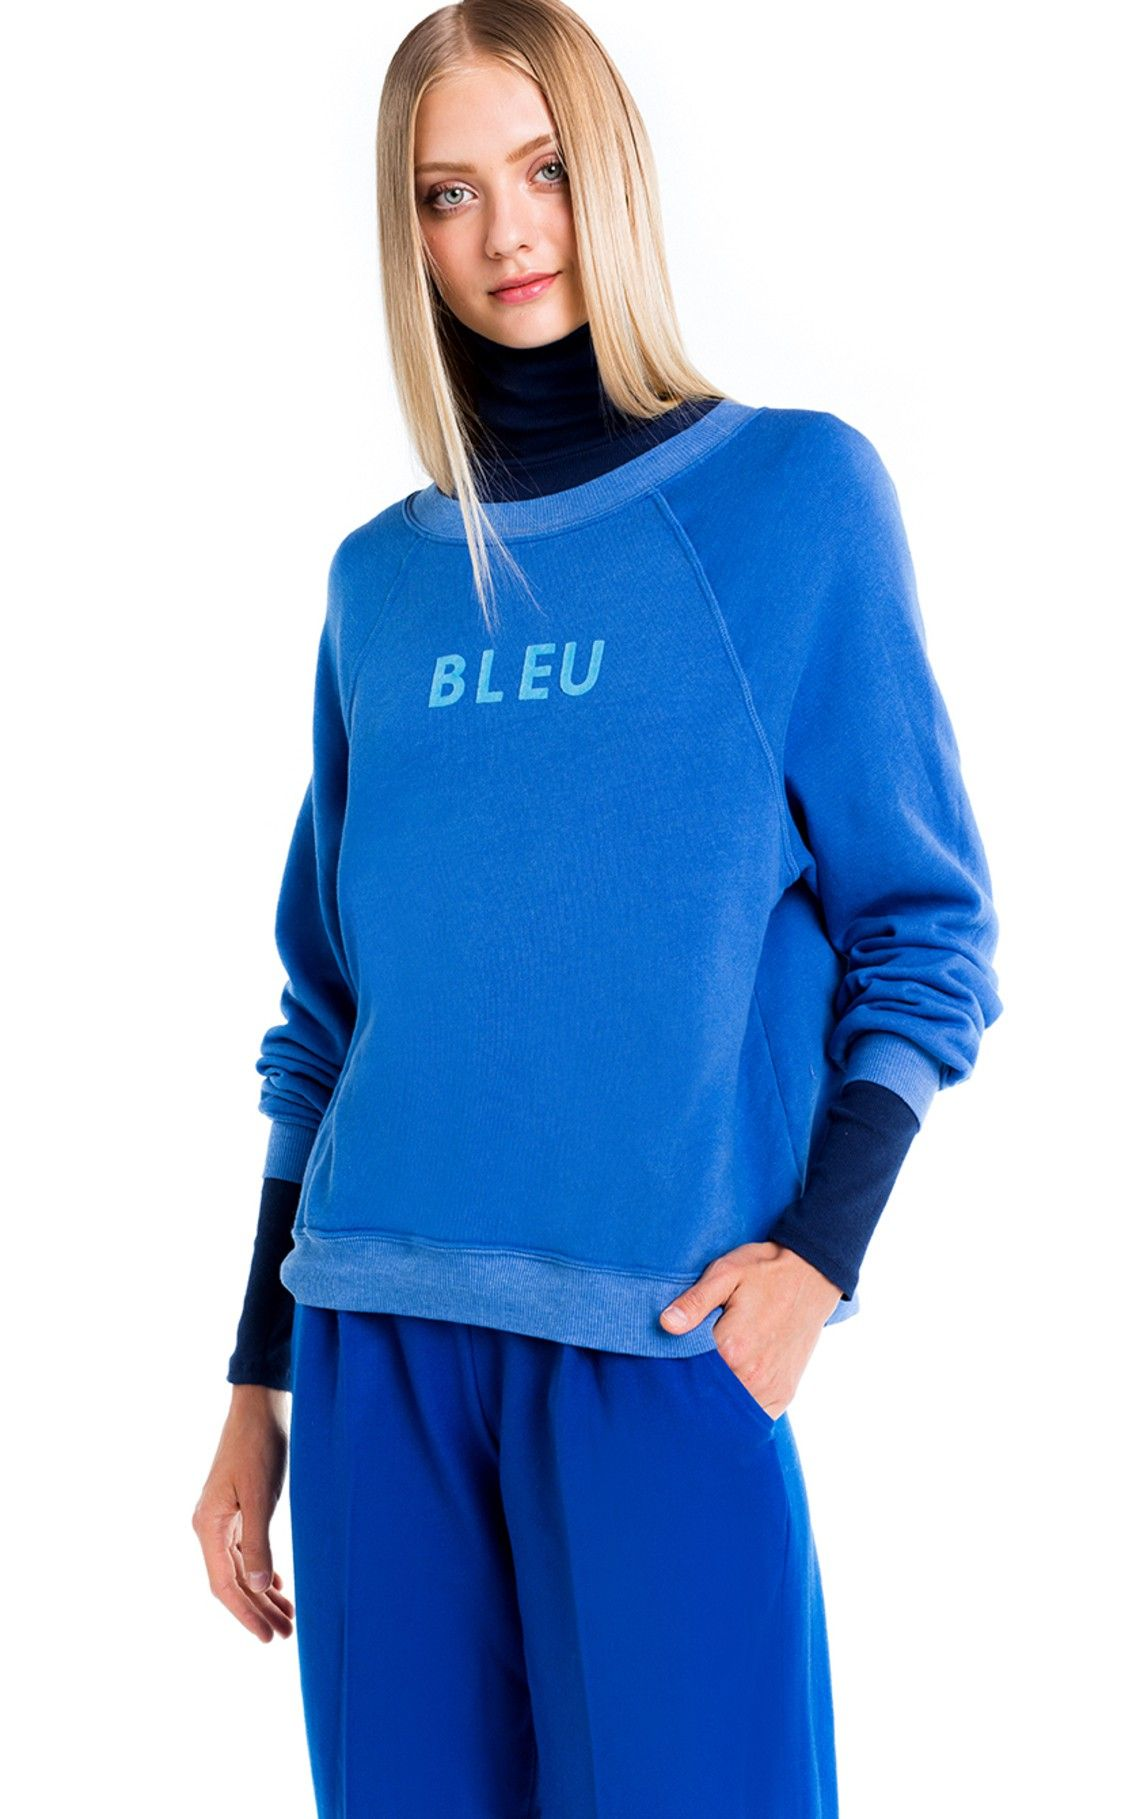 Bleu Sommers Sweater - Wildfox